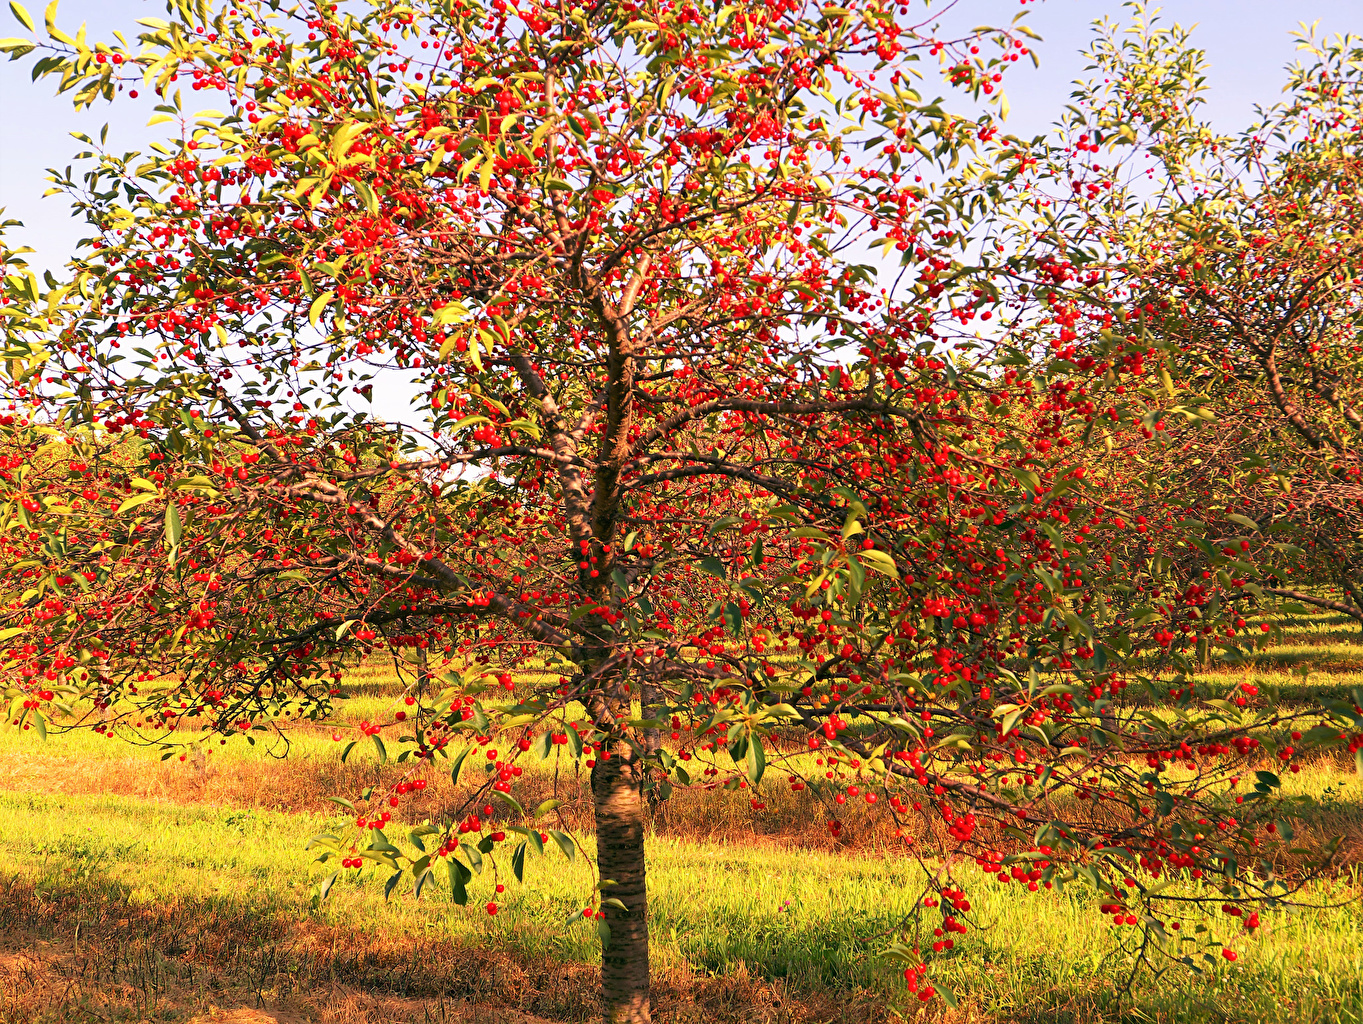 Wallpaper Nature Cherry Gardens Branches Trees